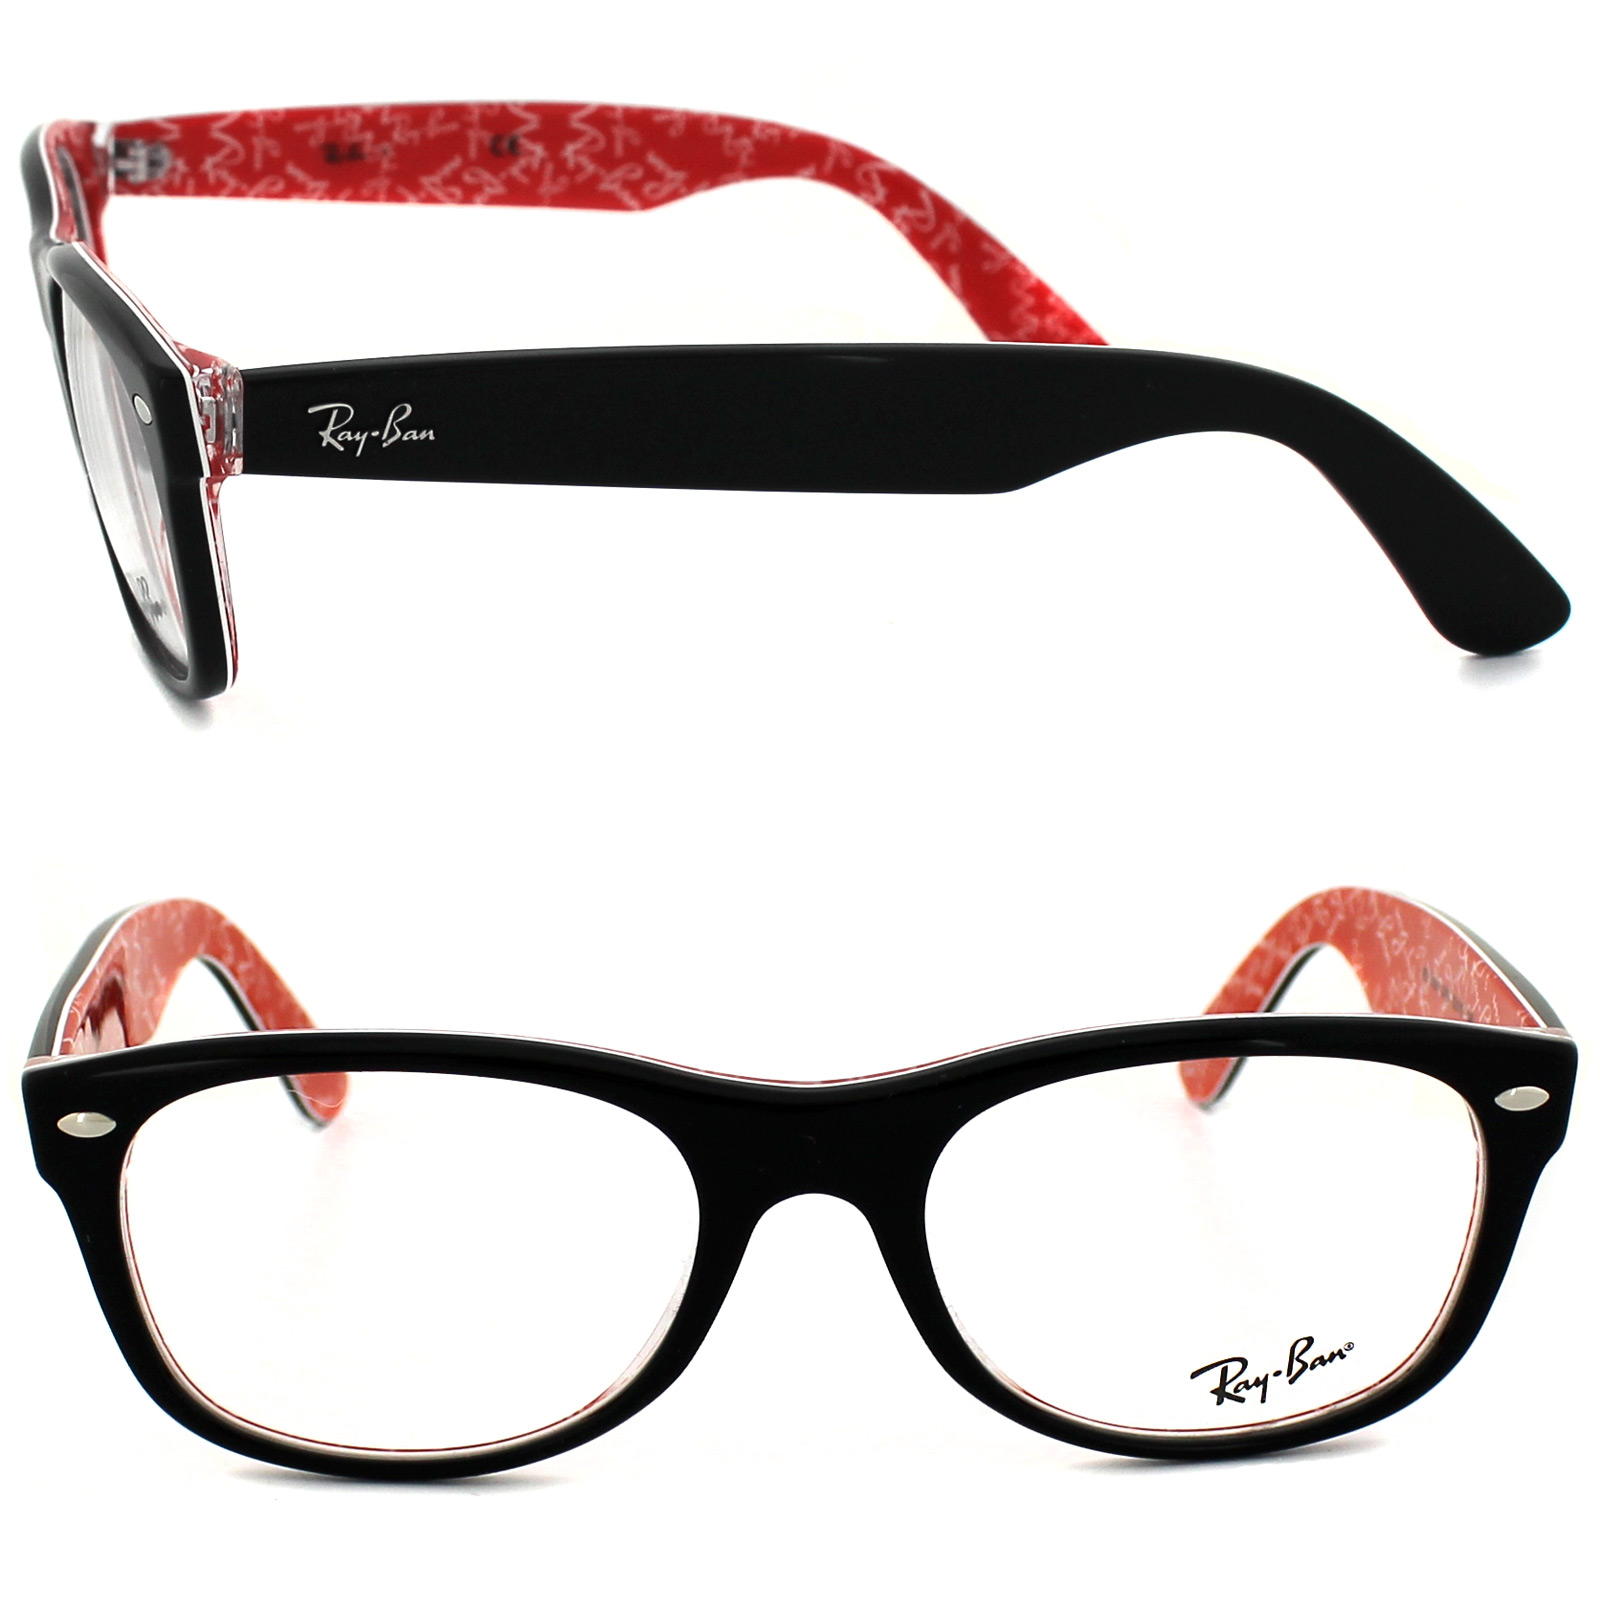 Glasses Frames Best : Ray-Ban Glasses Frames 5184 2479 Top Black On Texture Red ...